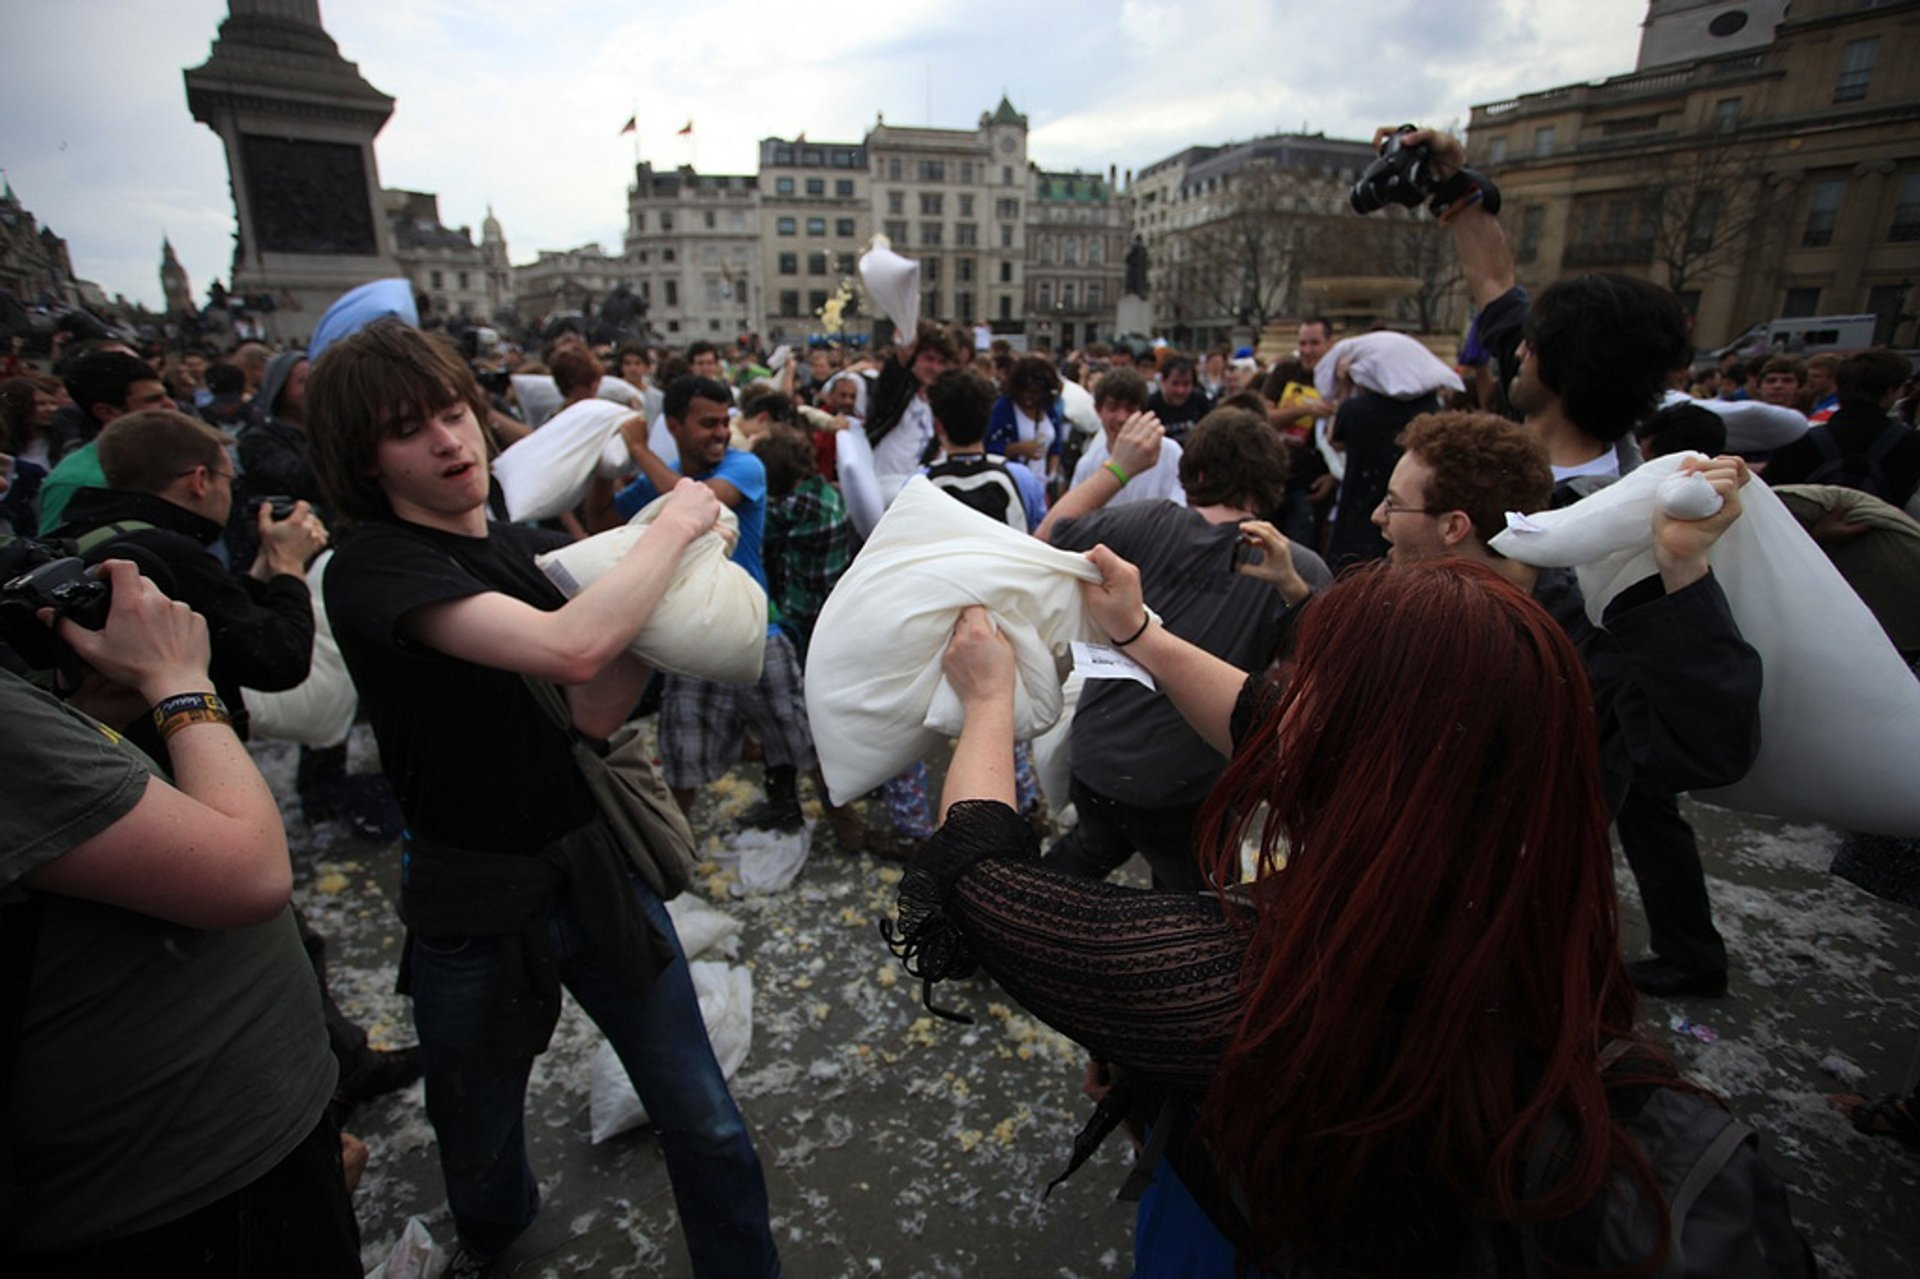 Best time for International Pillow Fight Day in London 2020